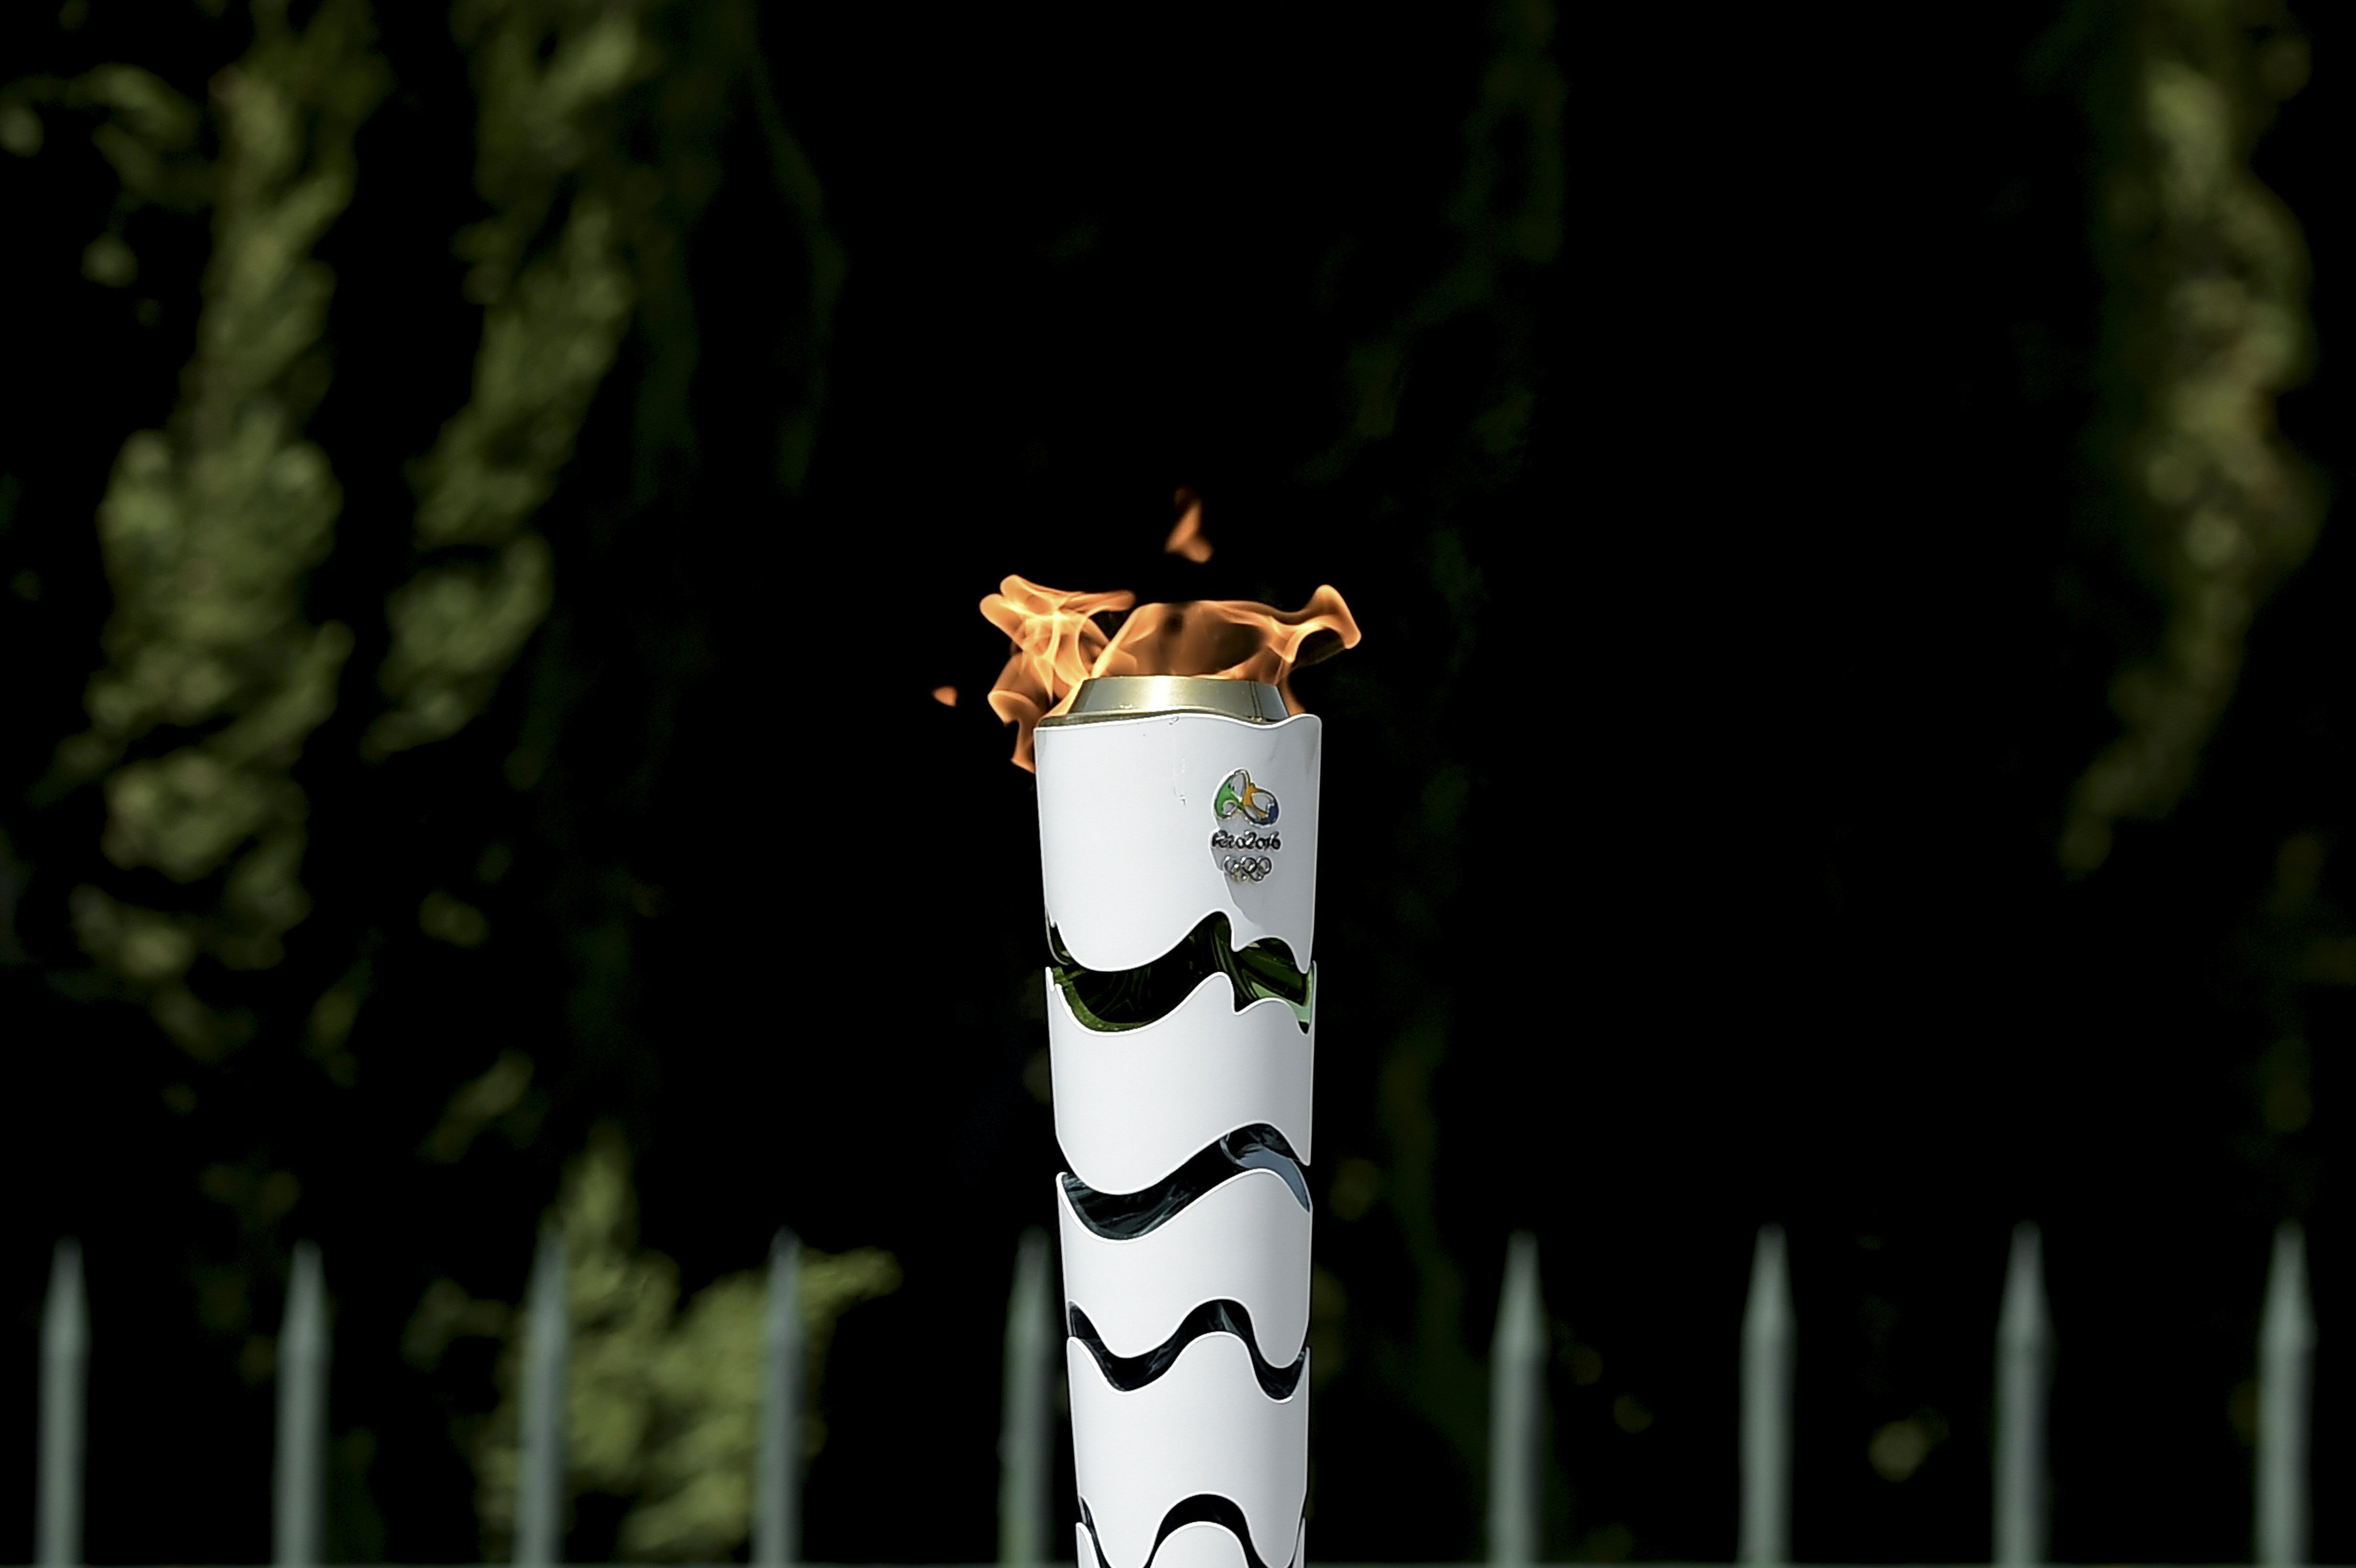 The Olympic Flame burns on a torch during the torch relay, on April 21, 2016, qfter the lighting ceremony of the Olympic flame in ancient Olympia, the sanctuary where the Olympic Games were born in 776 BC. The Olympic flame was lit Thursday in an ancient temple in one country in crisis and solemnly sent off carrying international hopes that Brazil's political paralysis will not taint the Rio Games that start in barely 100 days. / AFP / ARIS MESSINIS (Photo credit should read ARIS MESSINIS/AFP/Getty Images)